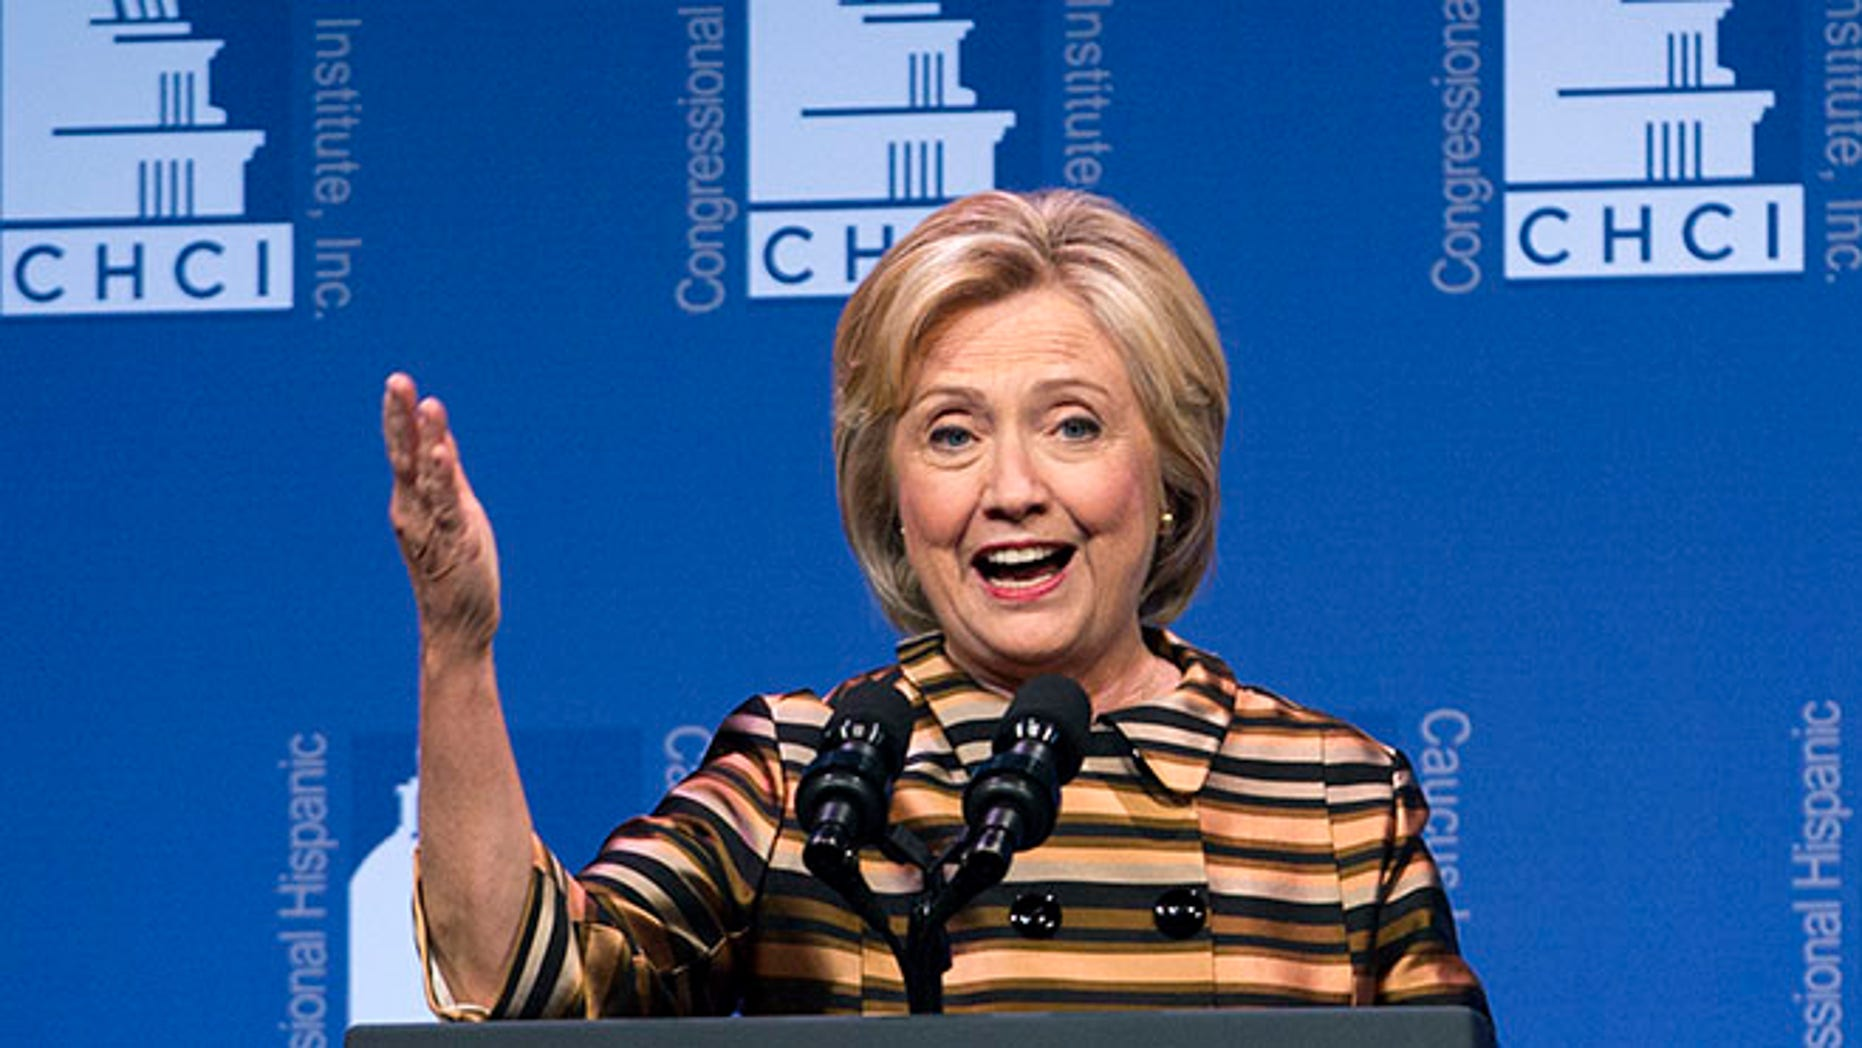 Democratic presidential candidate Hillary Clinton speaks to the Congressional Hispanic Caucus Institute's 39th Annual Gala Dinner held at the Washington Convention Center, in Washington, Thursday, Sept. 15, 2016. Clinton returned to the campaign trail after a bout of pneumonia that sidelined her for three days and revived questions about both Donald Trump's and her openness regarding their health..( AP Photo/Jose Luis Magana)